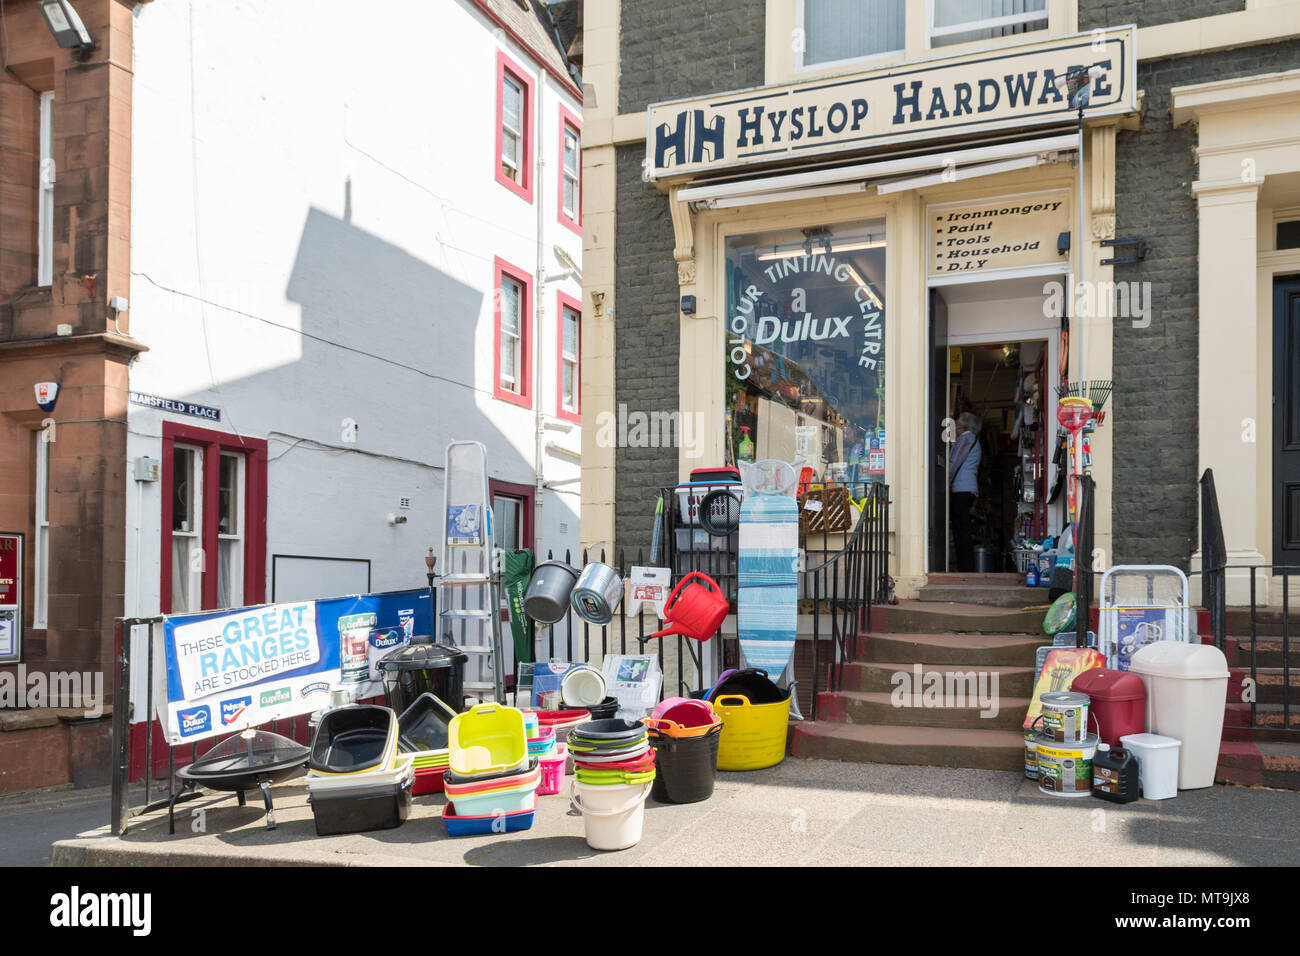 Hardware shop store with display of goods in the street, Moffat, Dumfries and Galloway, Scotland, UK - Stock Image